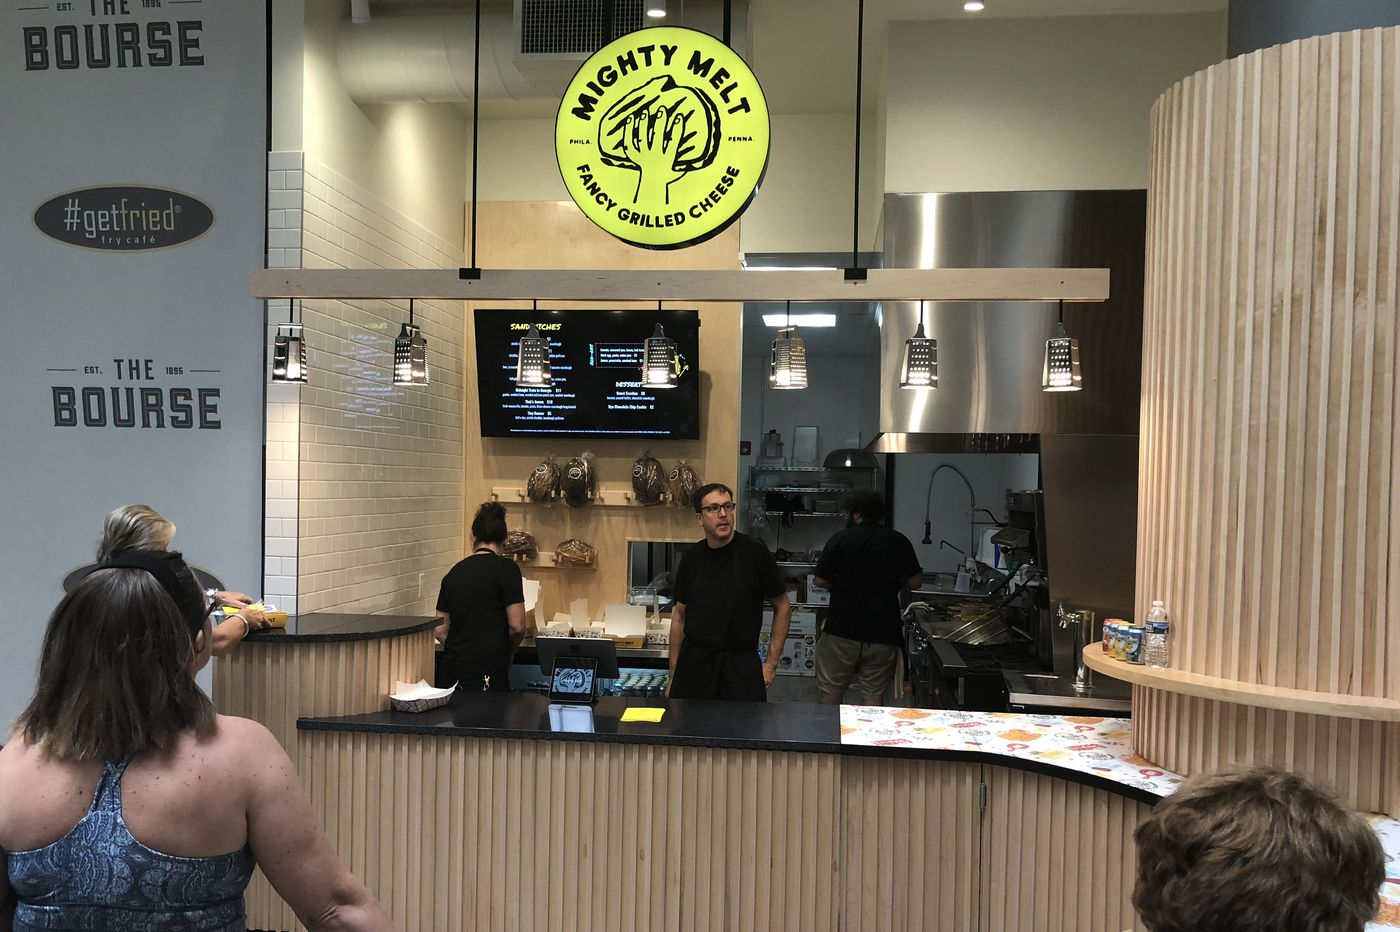 List of vendors at Bourse Food Hall